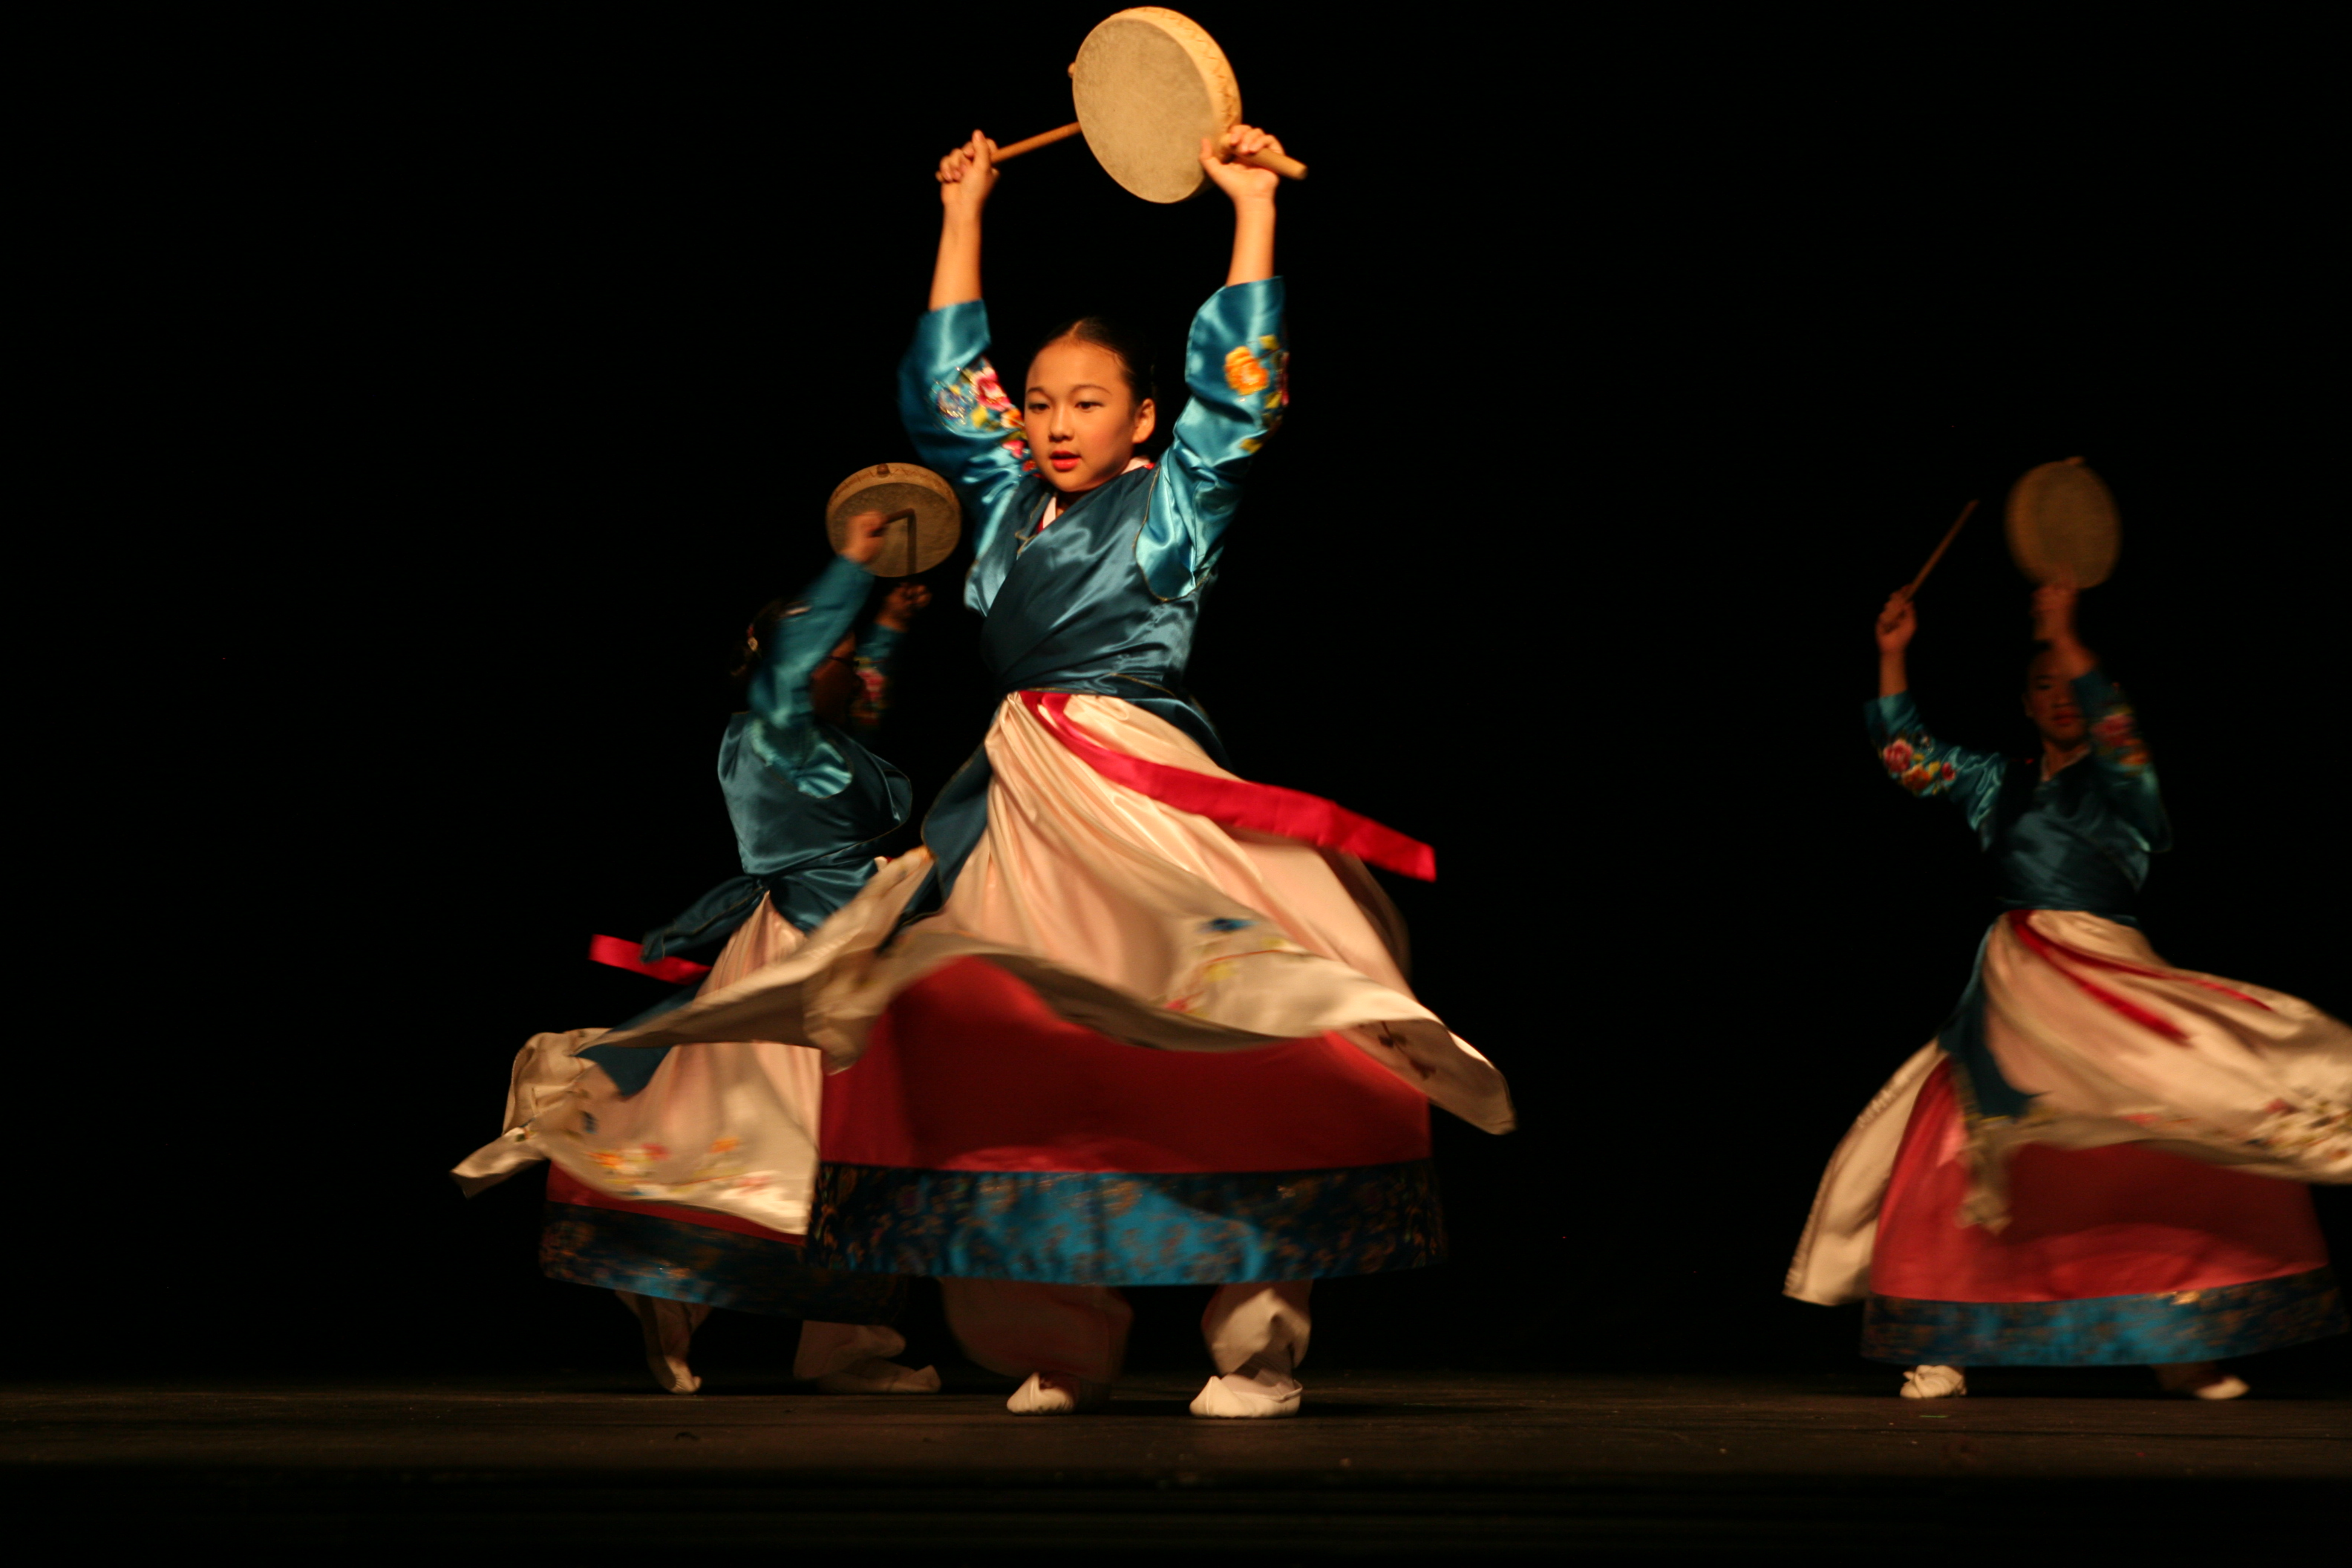 2015.05.16: Traditional Korean Music/Dance Performance